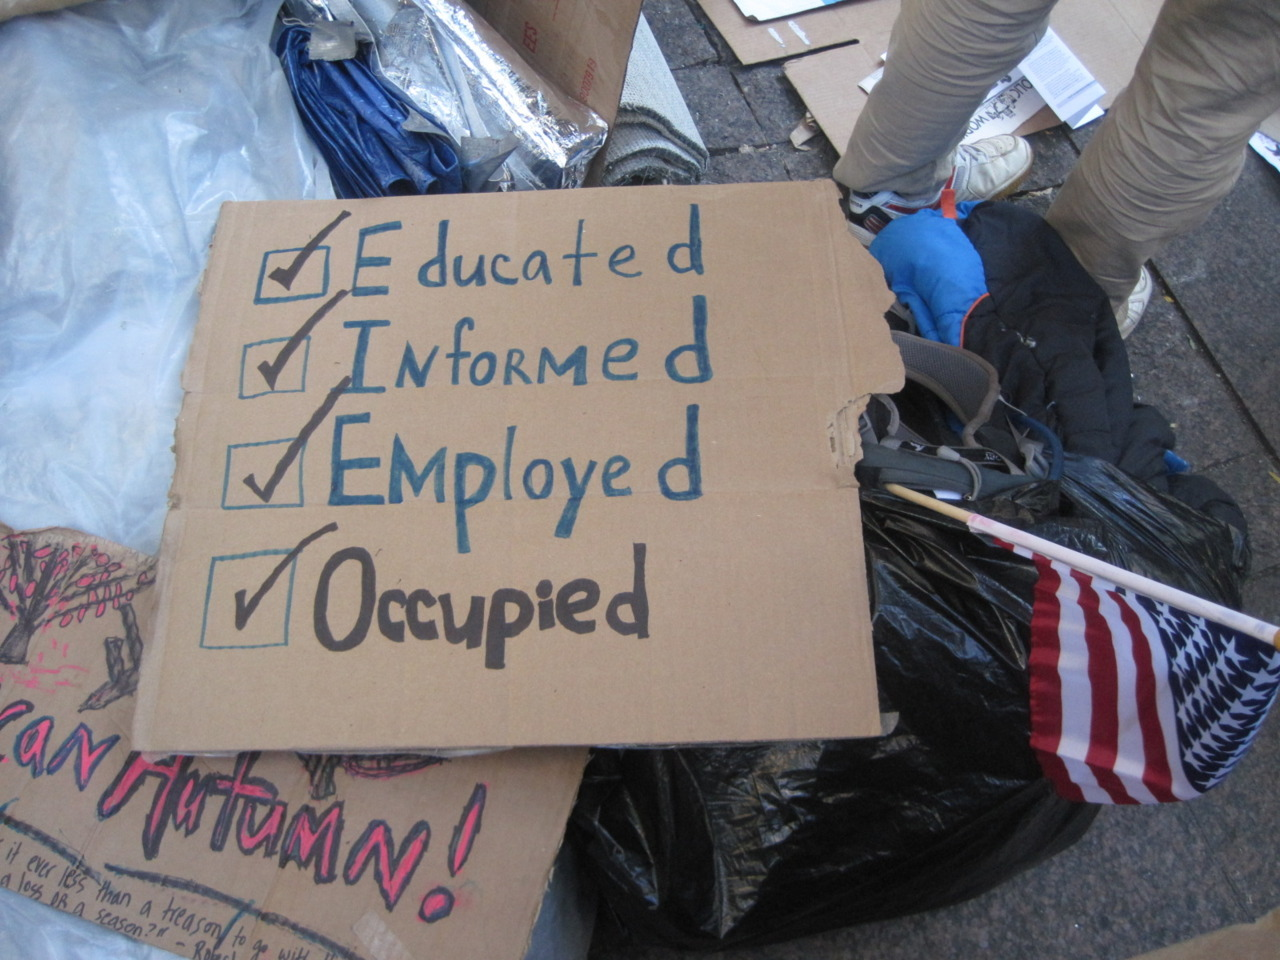 I am the 99%: EDUCATED, INFORMED, EMPLOYED, OCCUPIED.